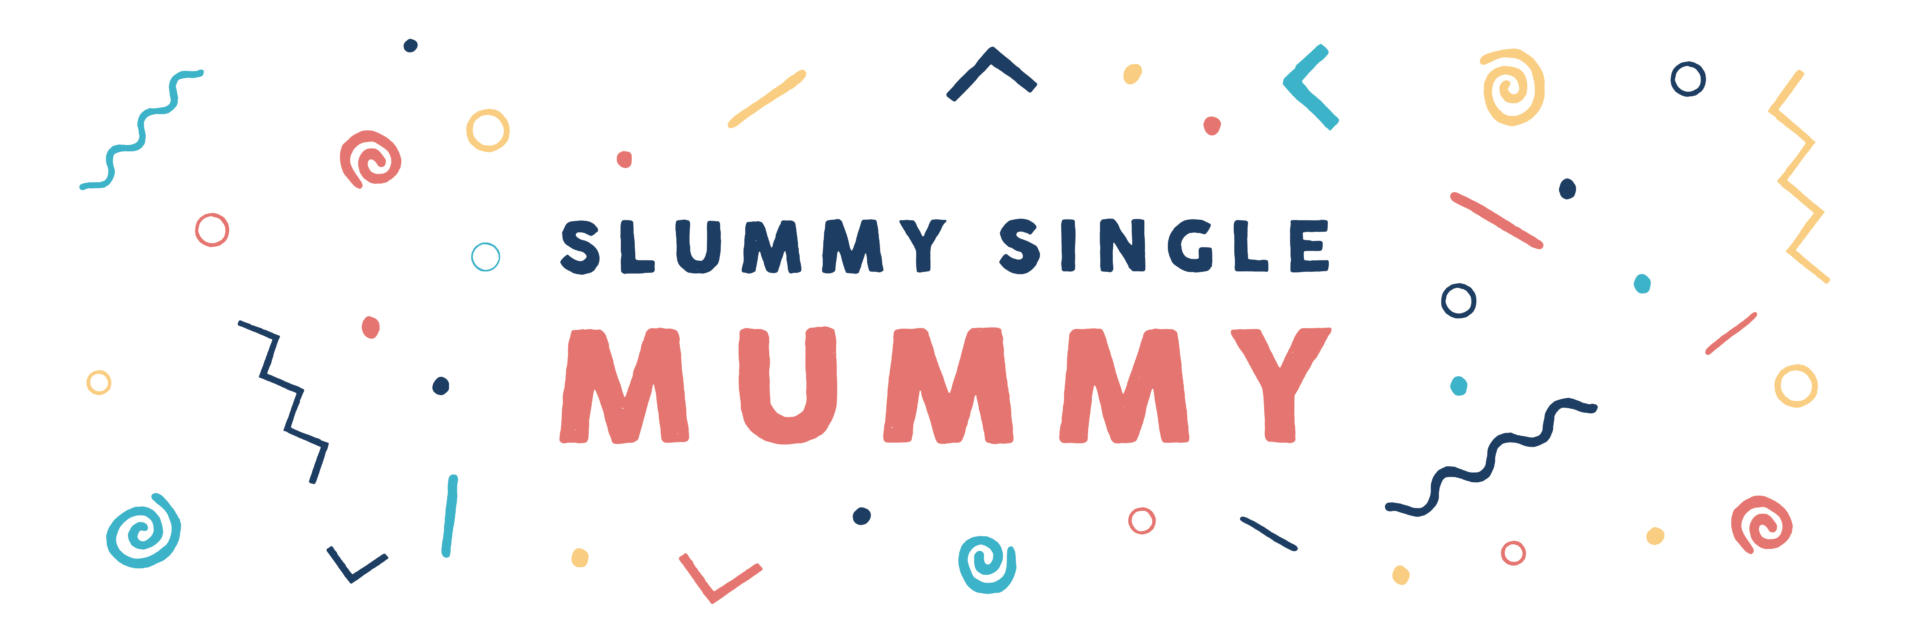 Slummy single mummy